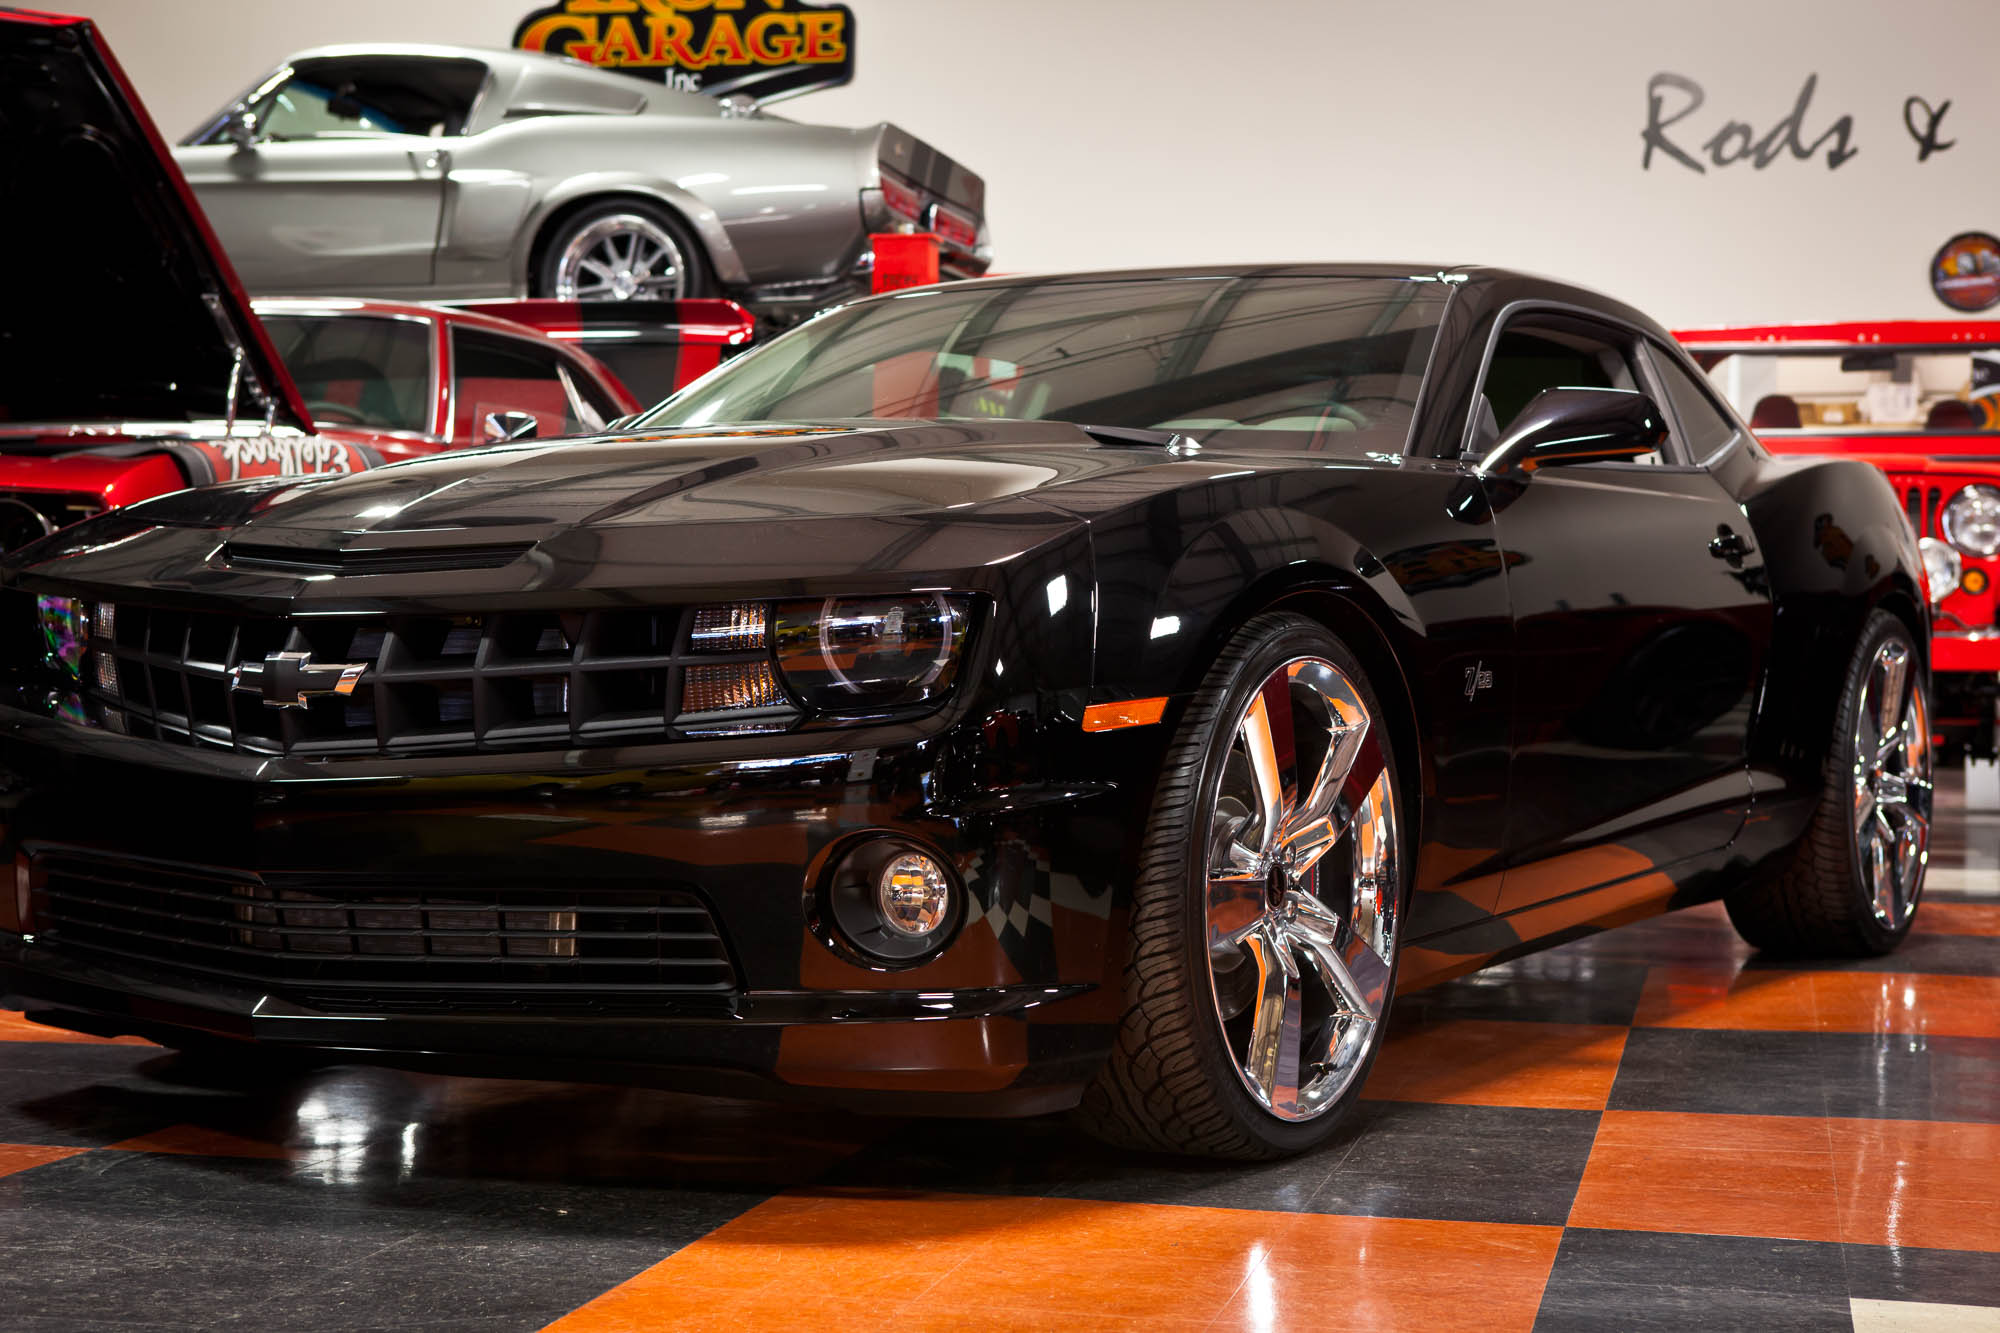 High Performance Tires >> 2011 Iron Editon Camaro z28 - Sold - The Iron Garage